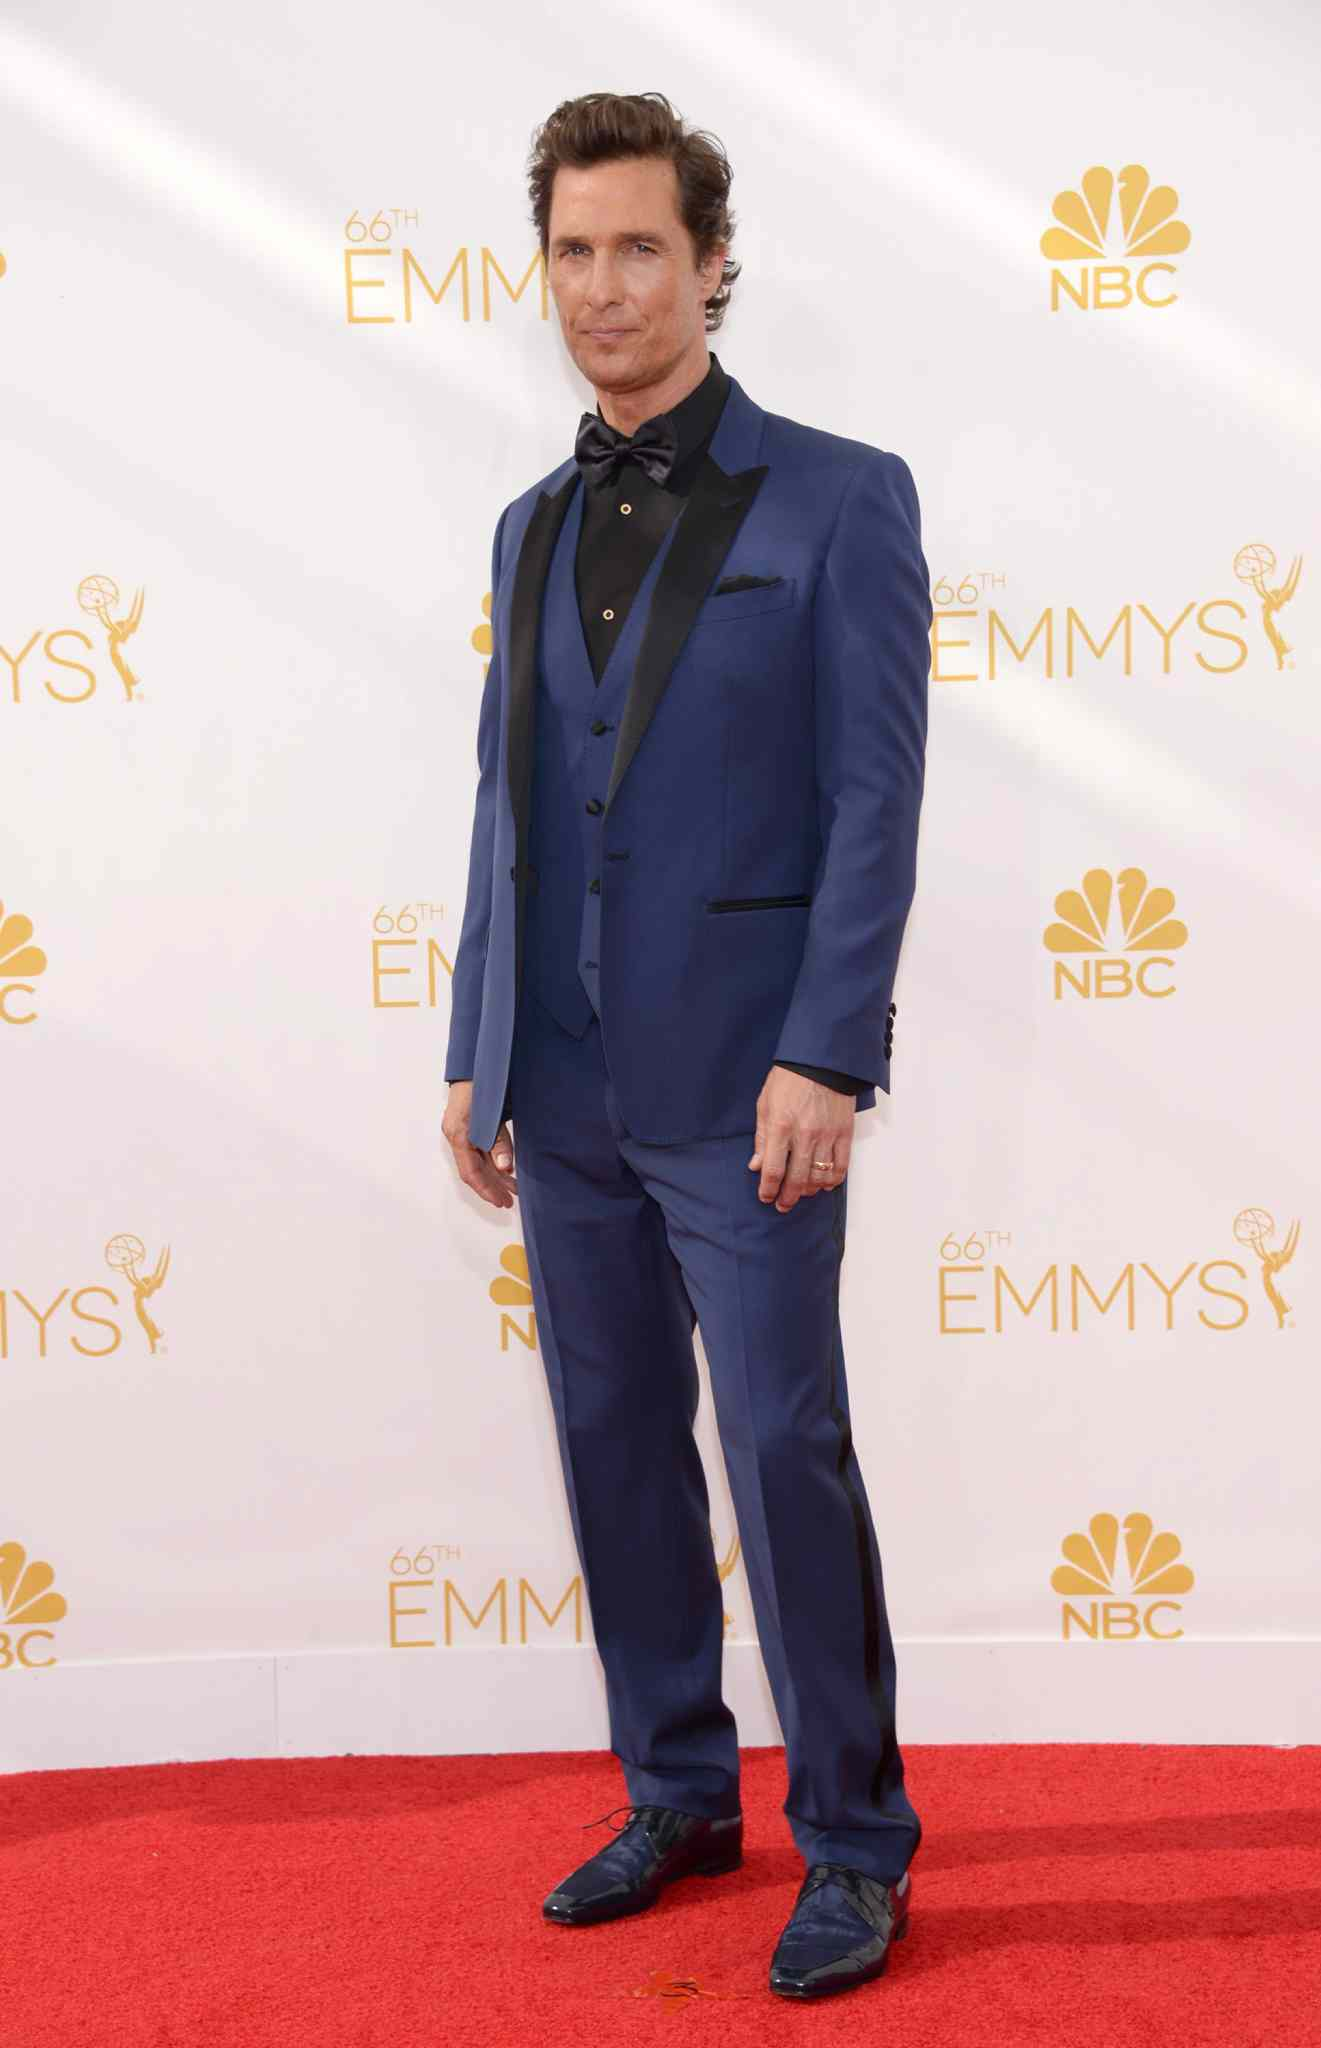 Matthew McConaughey arrives at the 66th Primetime Emmy Awards at the Nokia Theatre L.A. Live Monday.